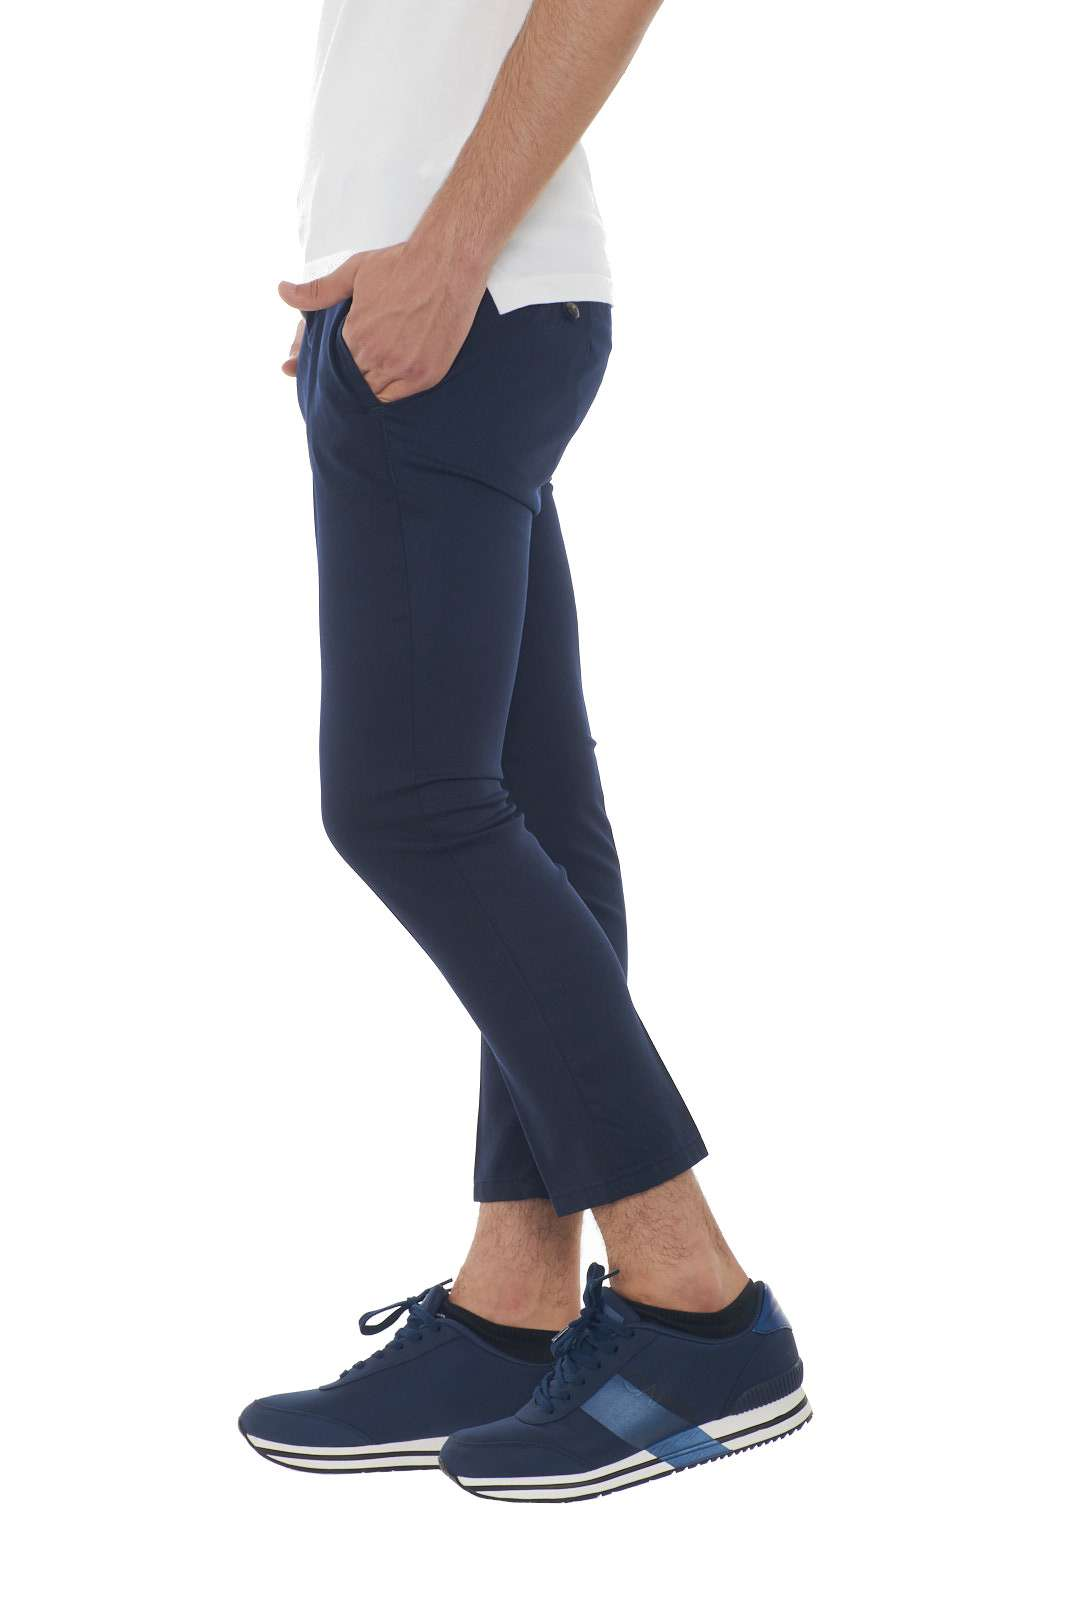 https://www.parmax.com/media/catalog/product/a/i/PE-outlet_parmax-pantaloni-uomo-Michael-Coal-CLARK3361-B.jpg